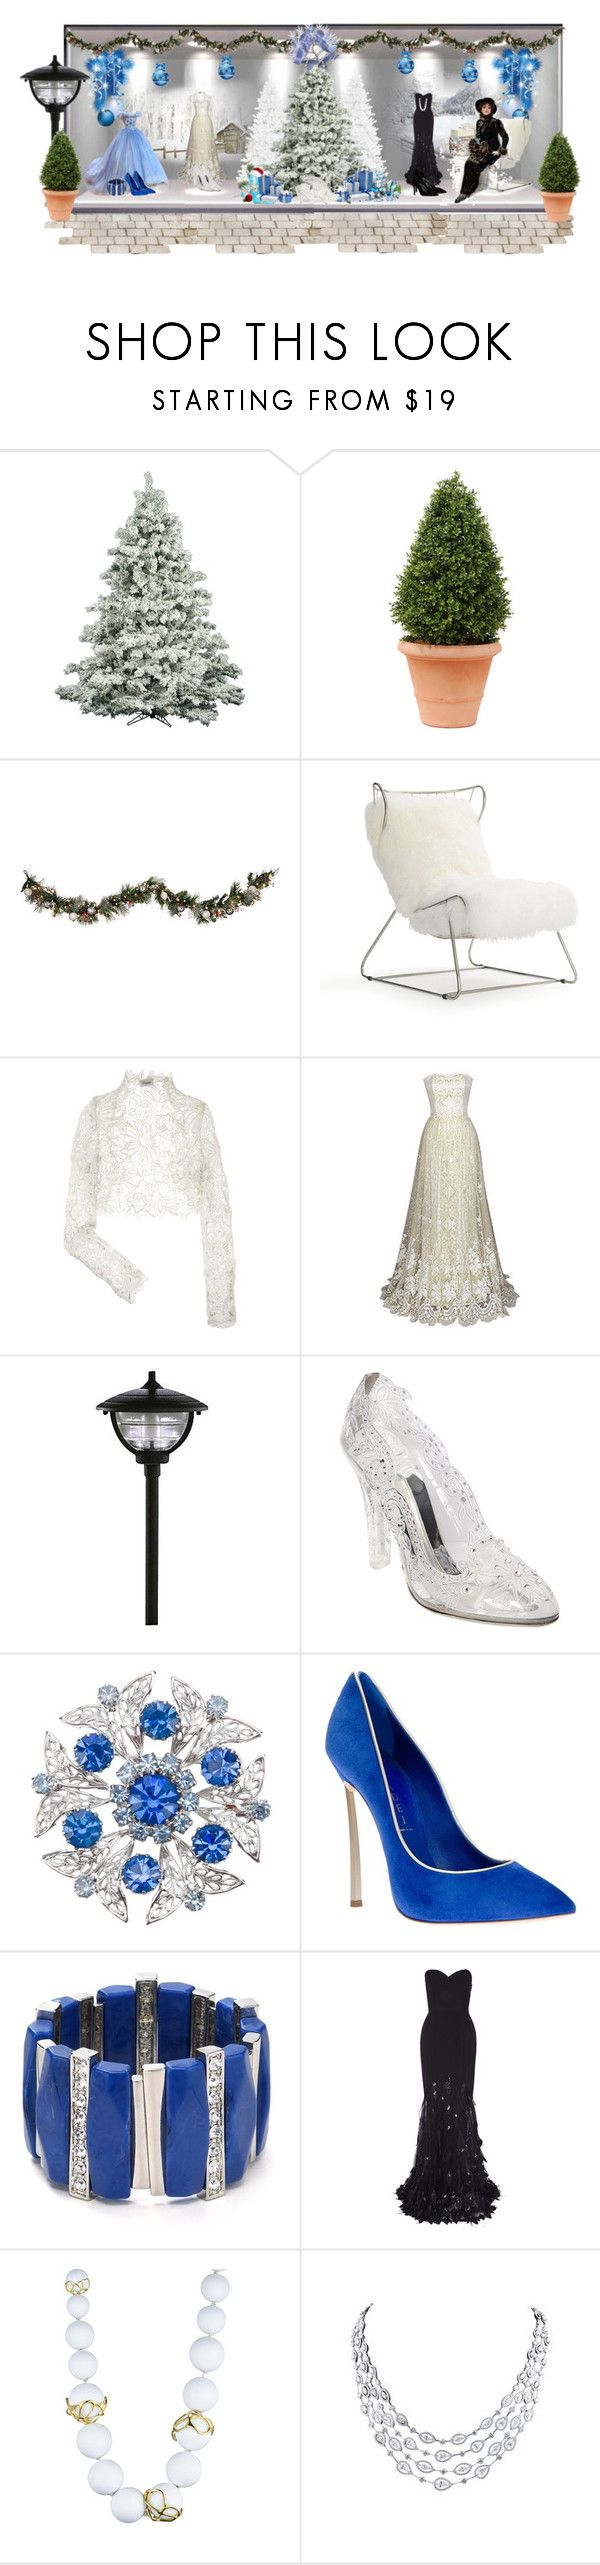 """Vintage Christmas"" by ewelina198590 ❤ liked on Polyvore featuring Improvements, Mitchell Gold + Bob Williams, Temperley London, Dolce&Gabbana, Casadei, Aqua, Rachel Gilbert, Alexis Bittar, Yves Saint Laurent and vintage"